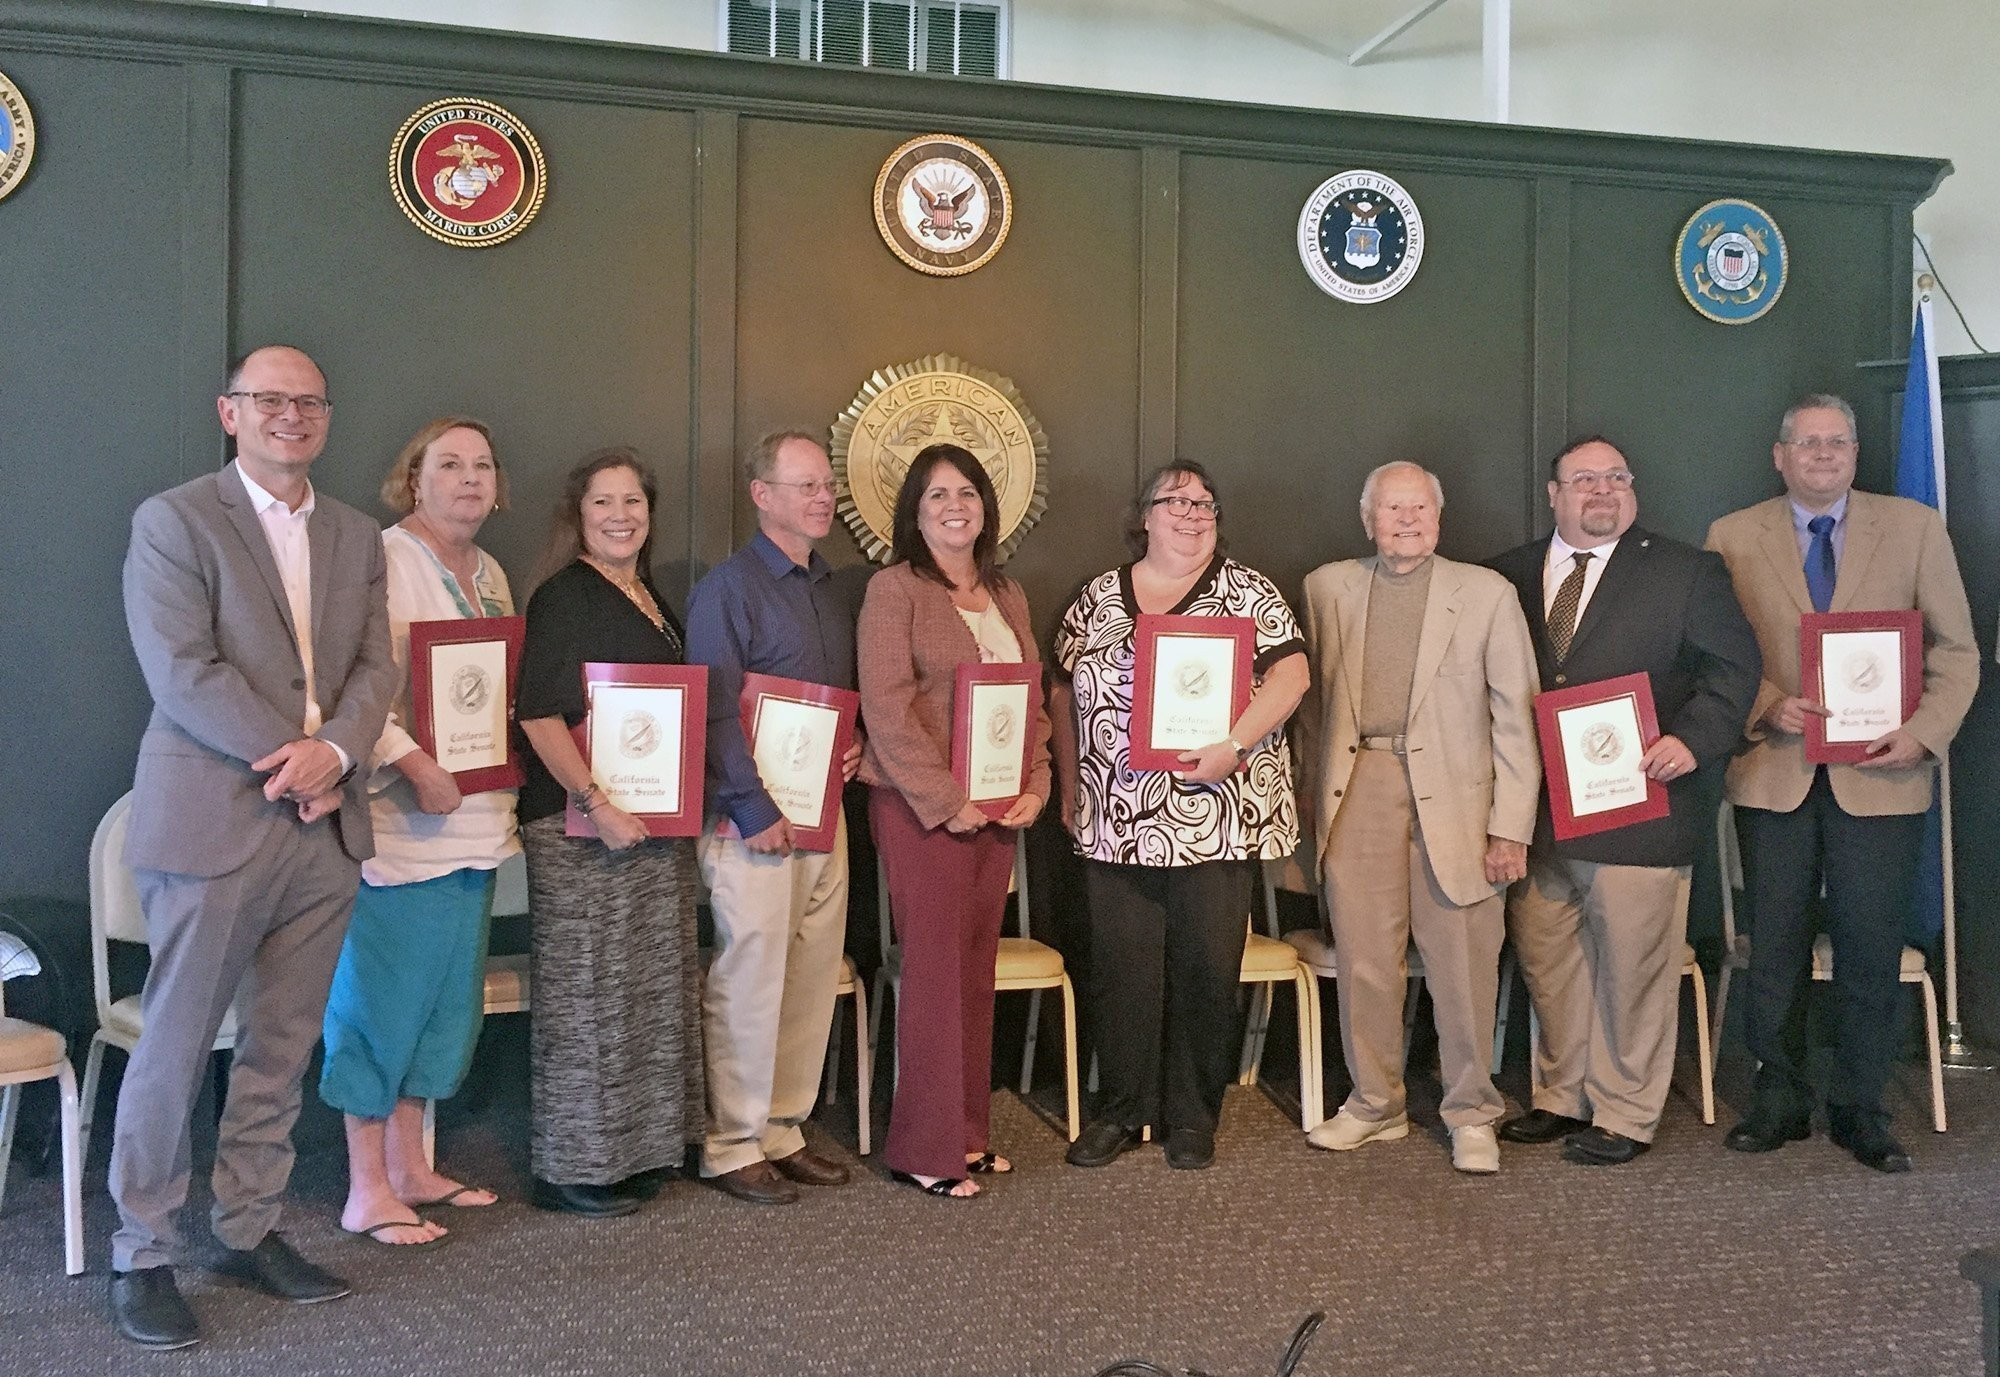 Community clubs american legion honors community service daily pilot